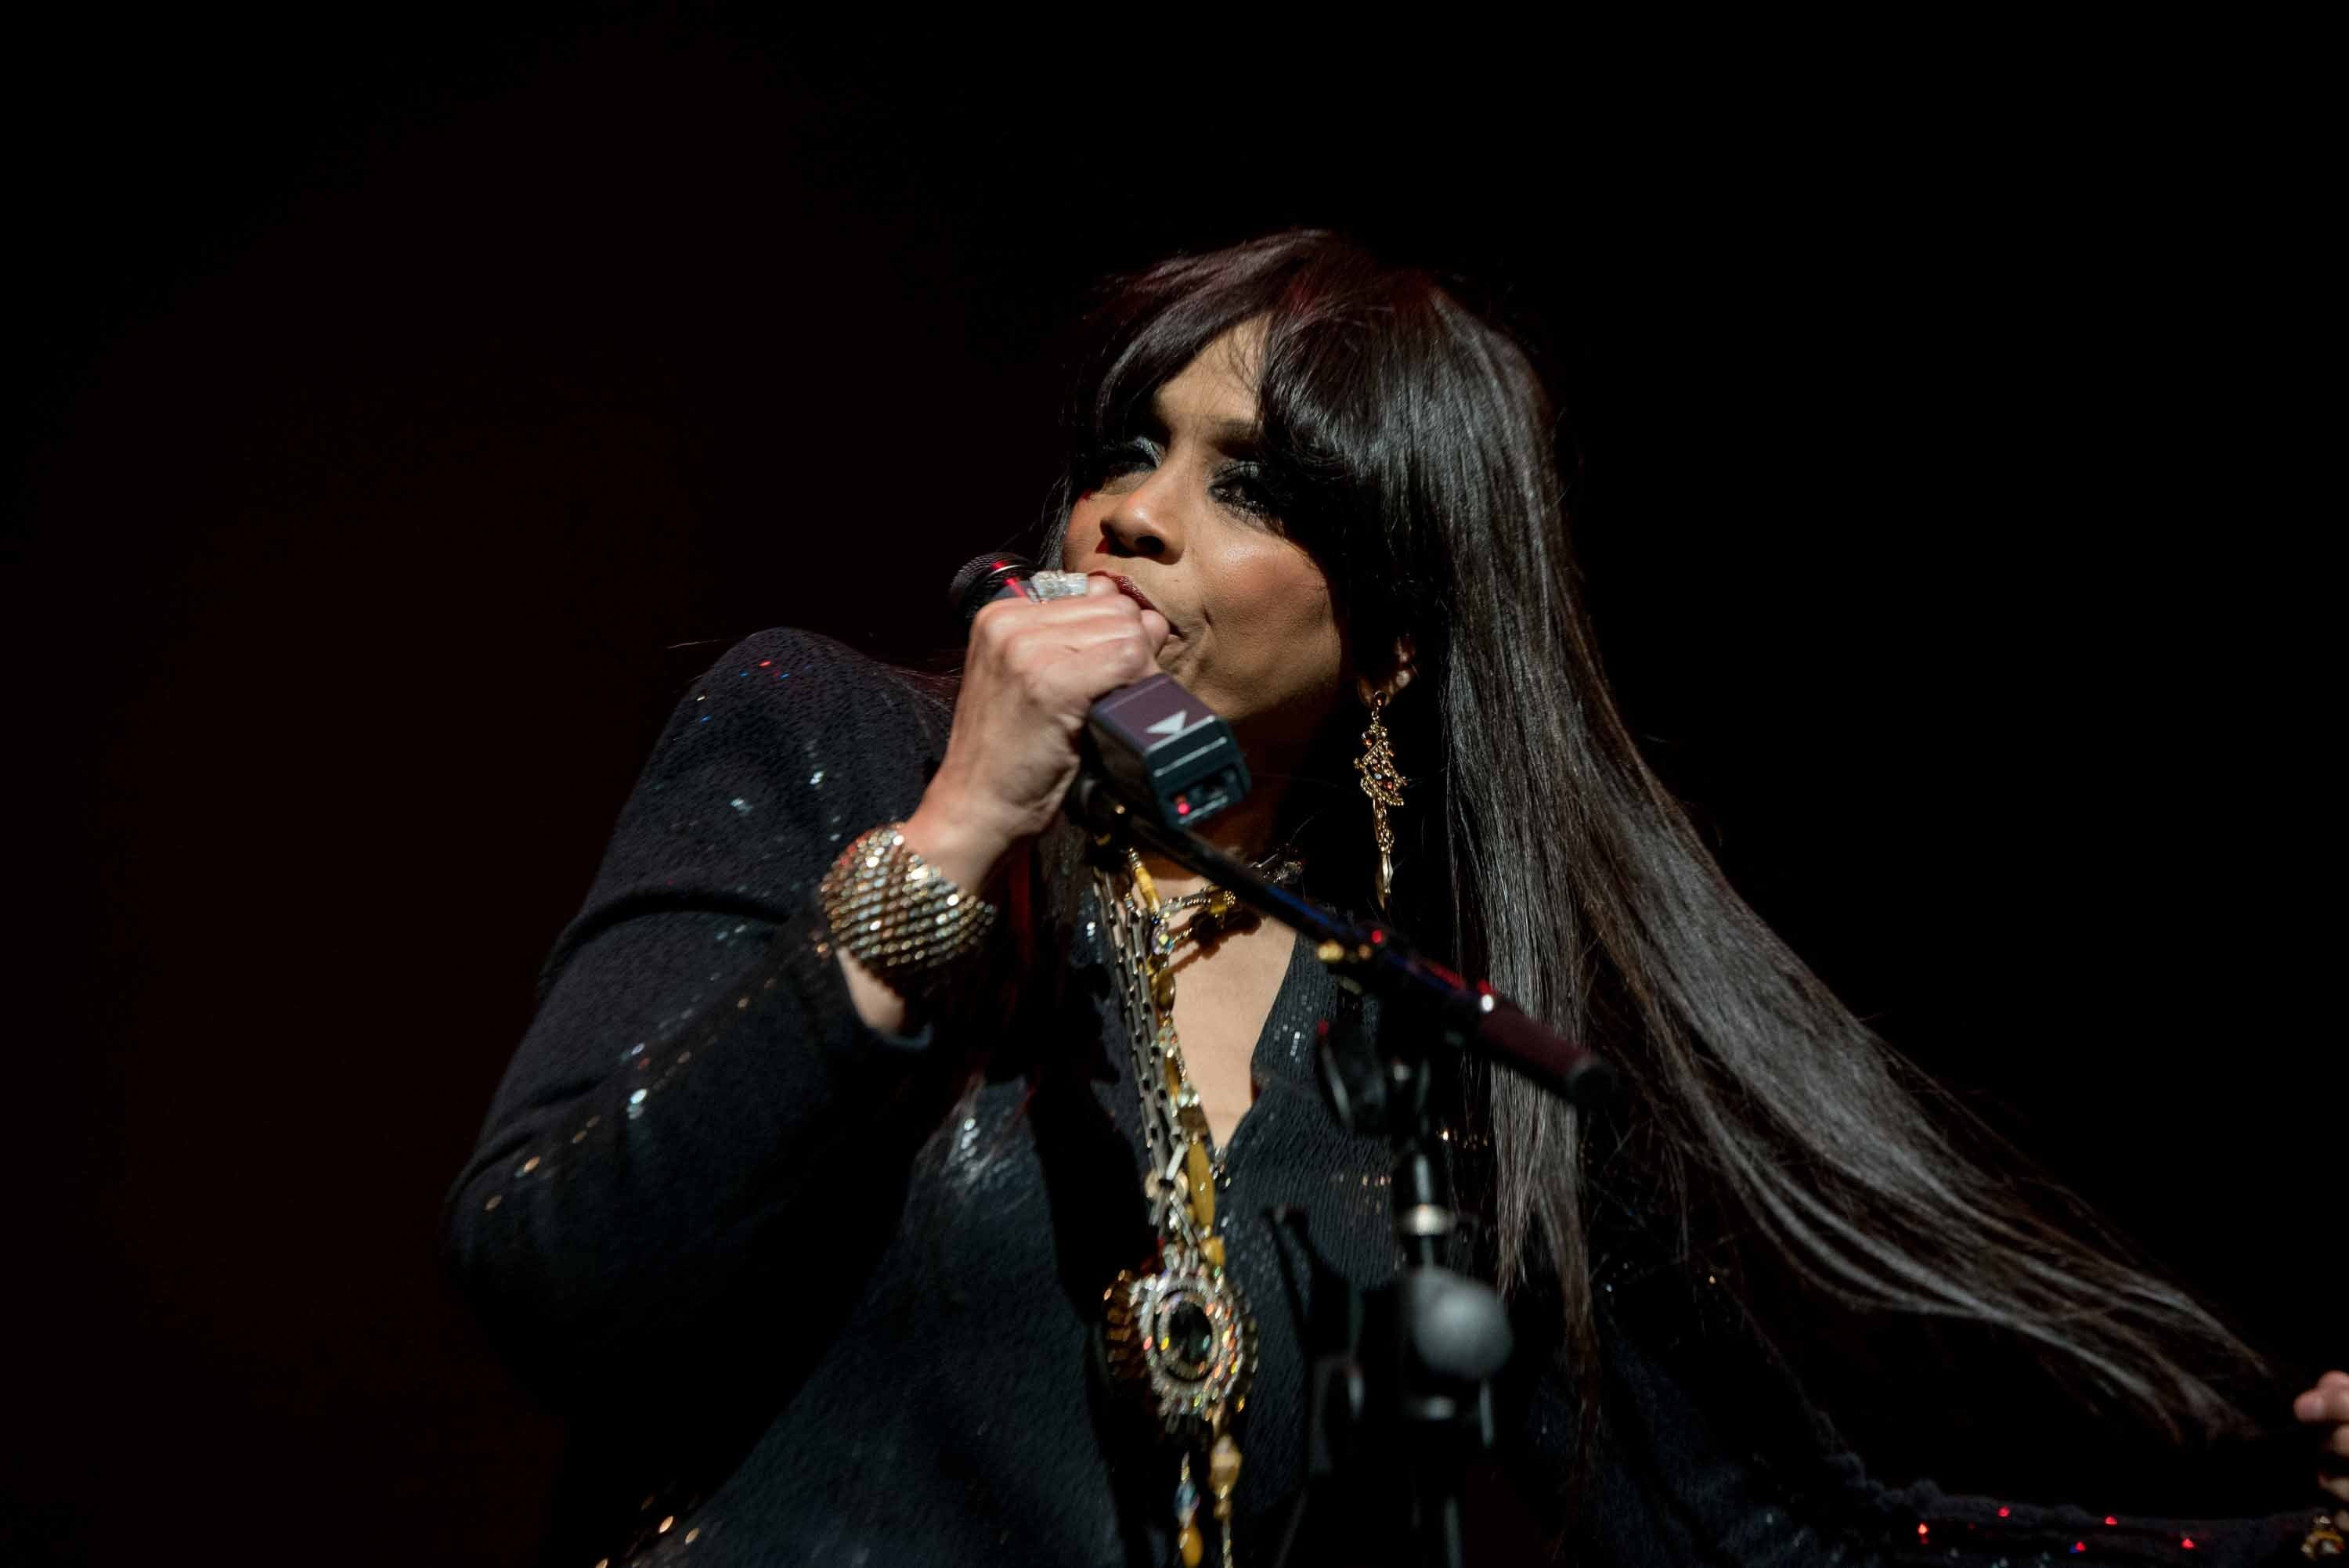 Vickie Winans closes the show by performing